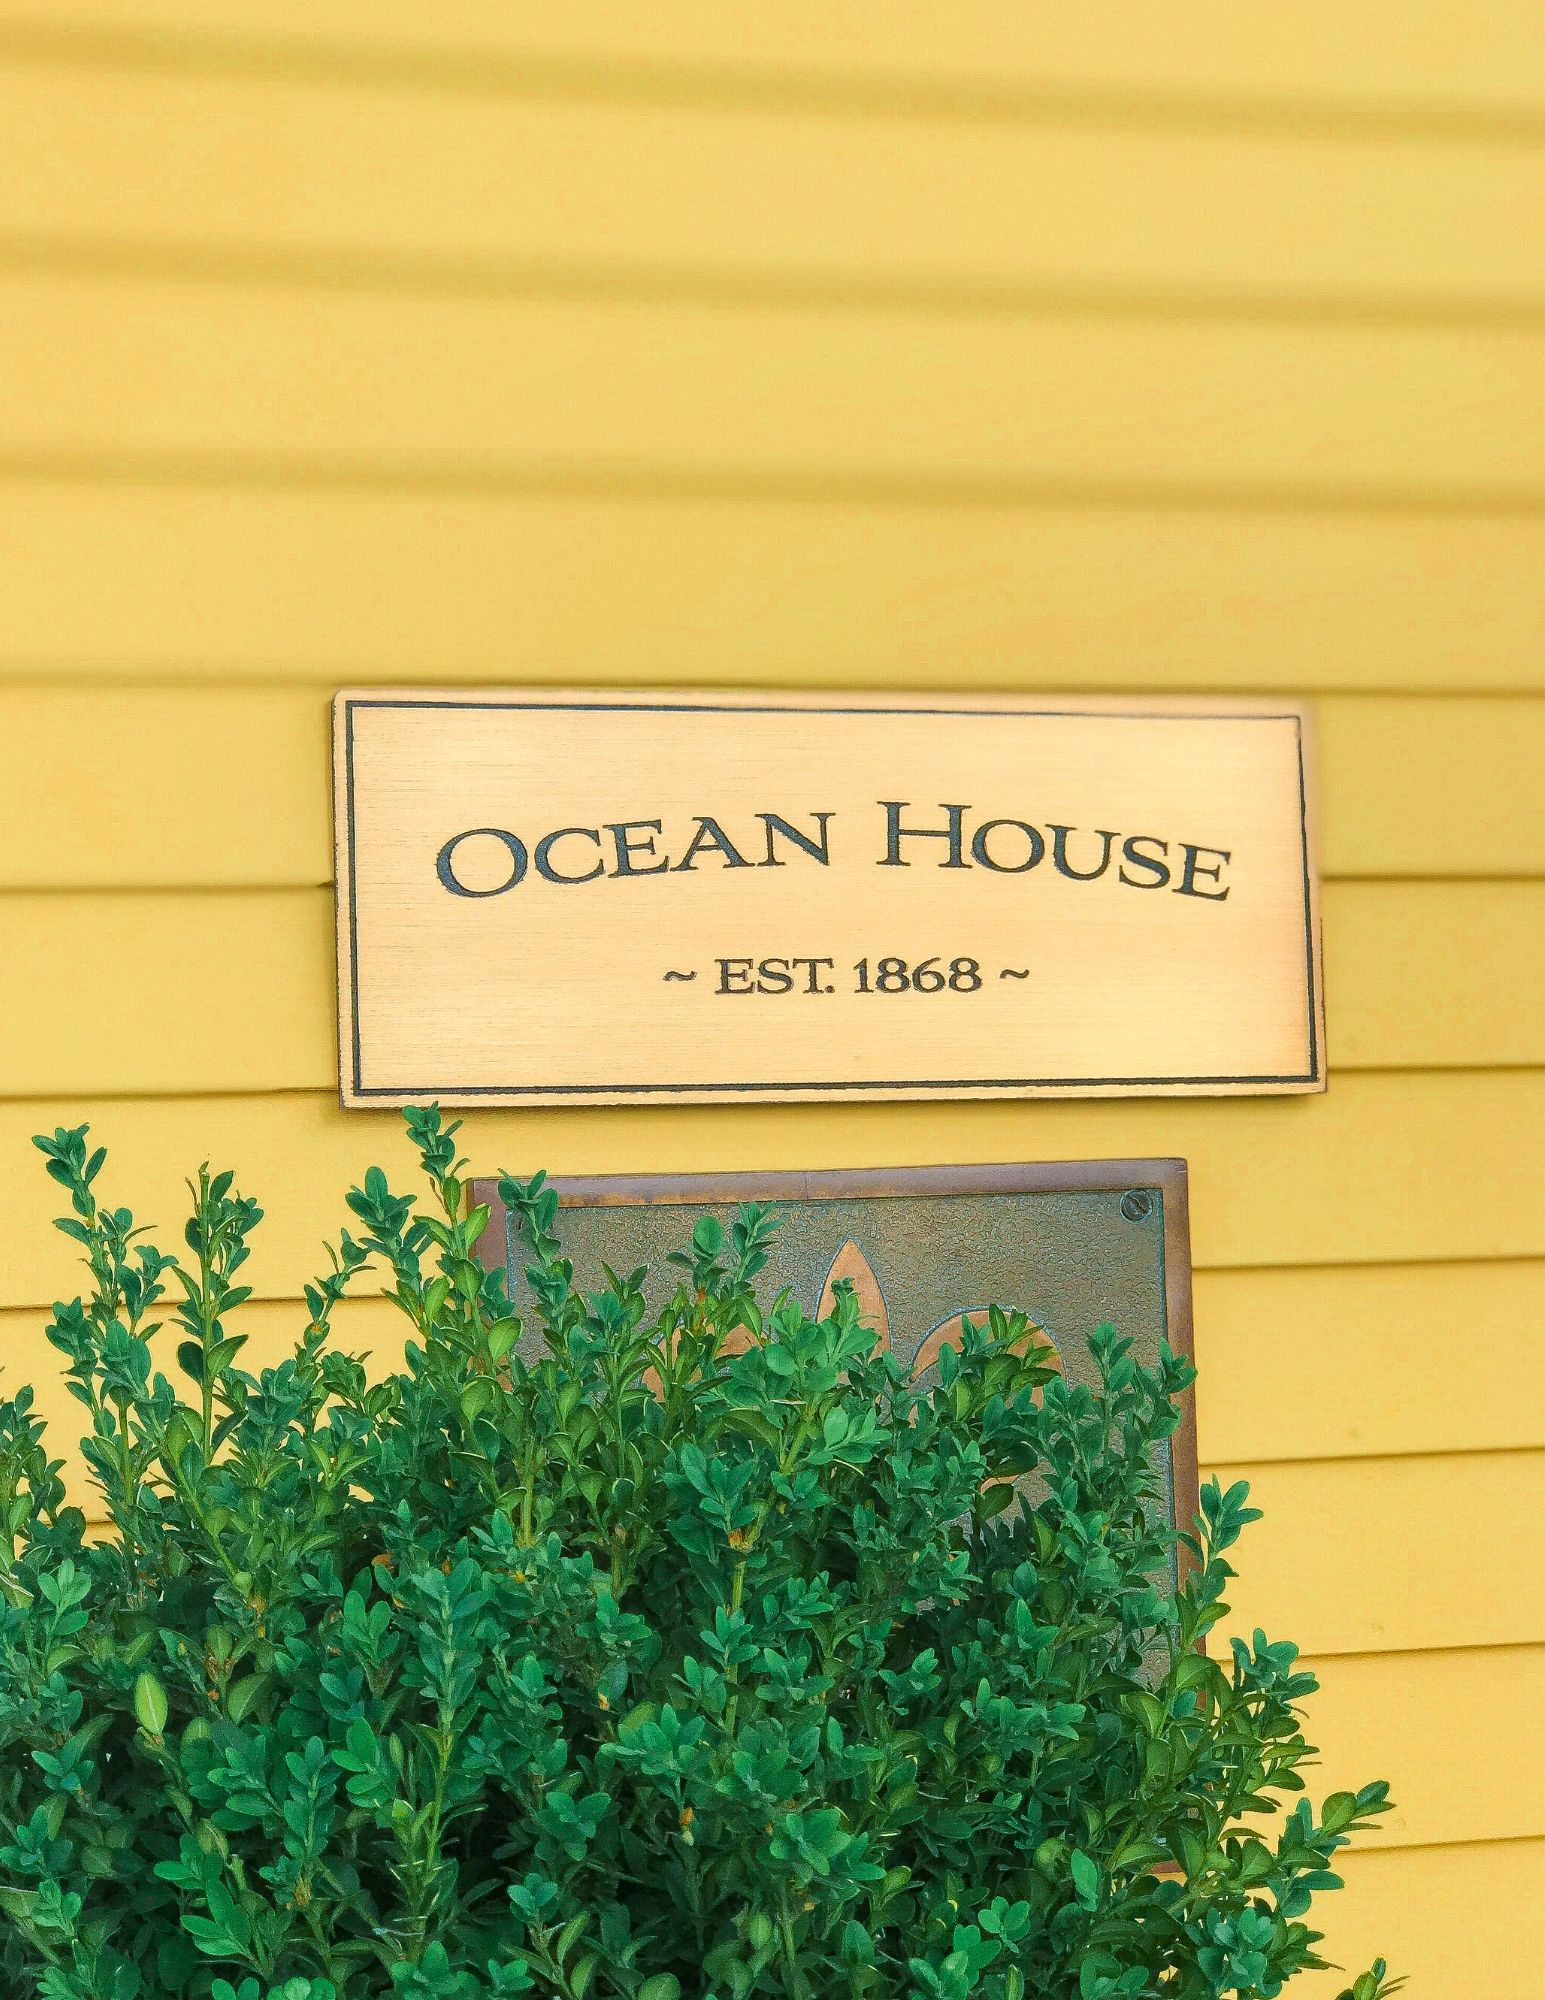 Ocean House Watch Hill Rhode Island-39